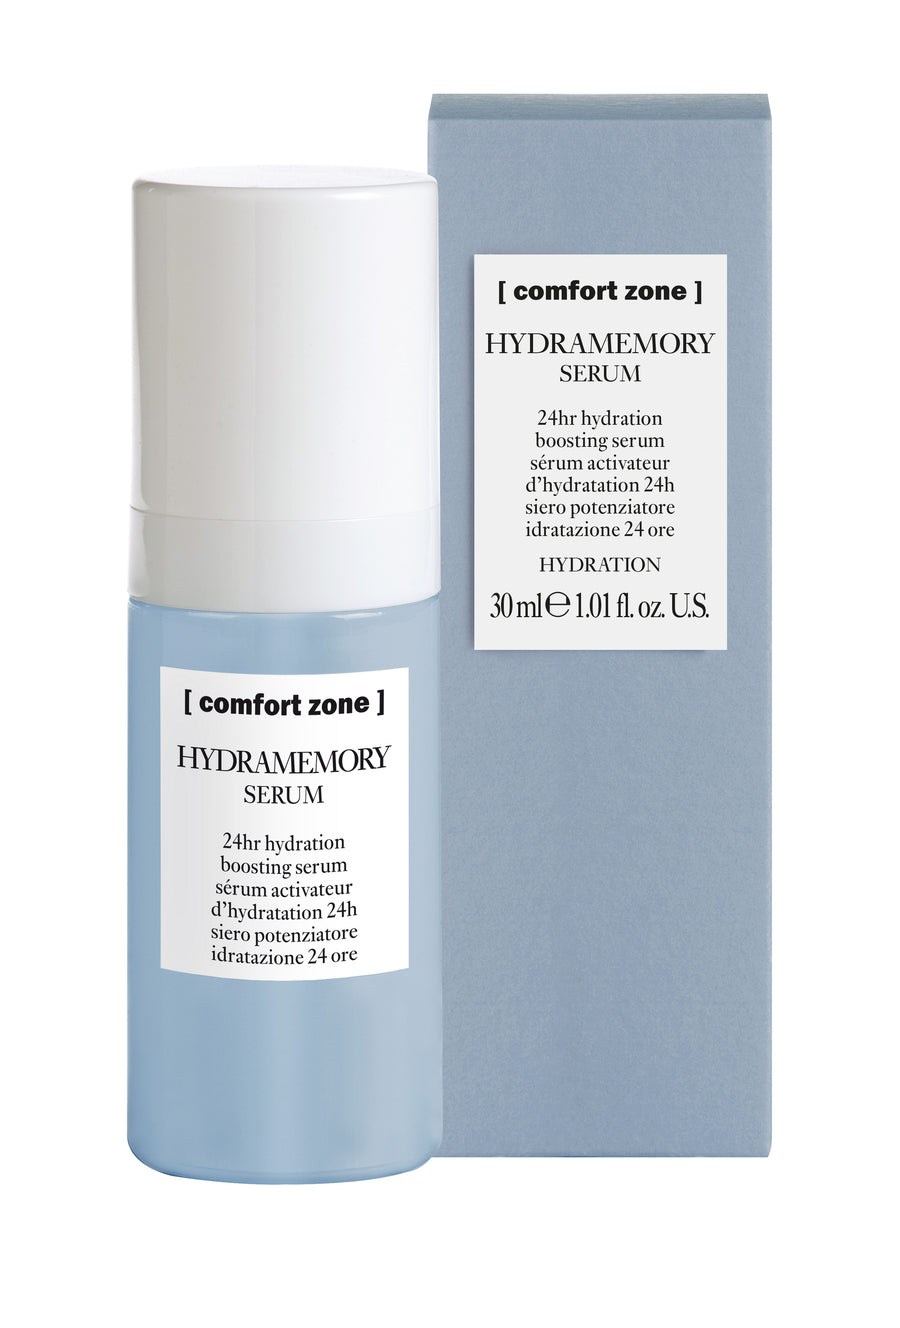 Hydramemory serum 30ml